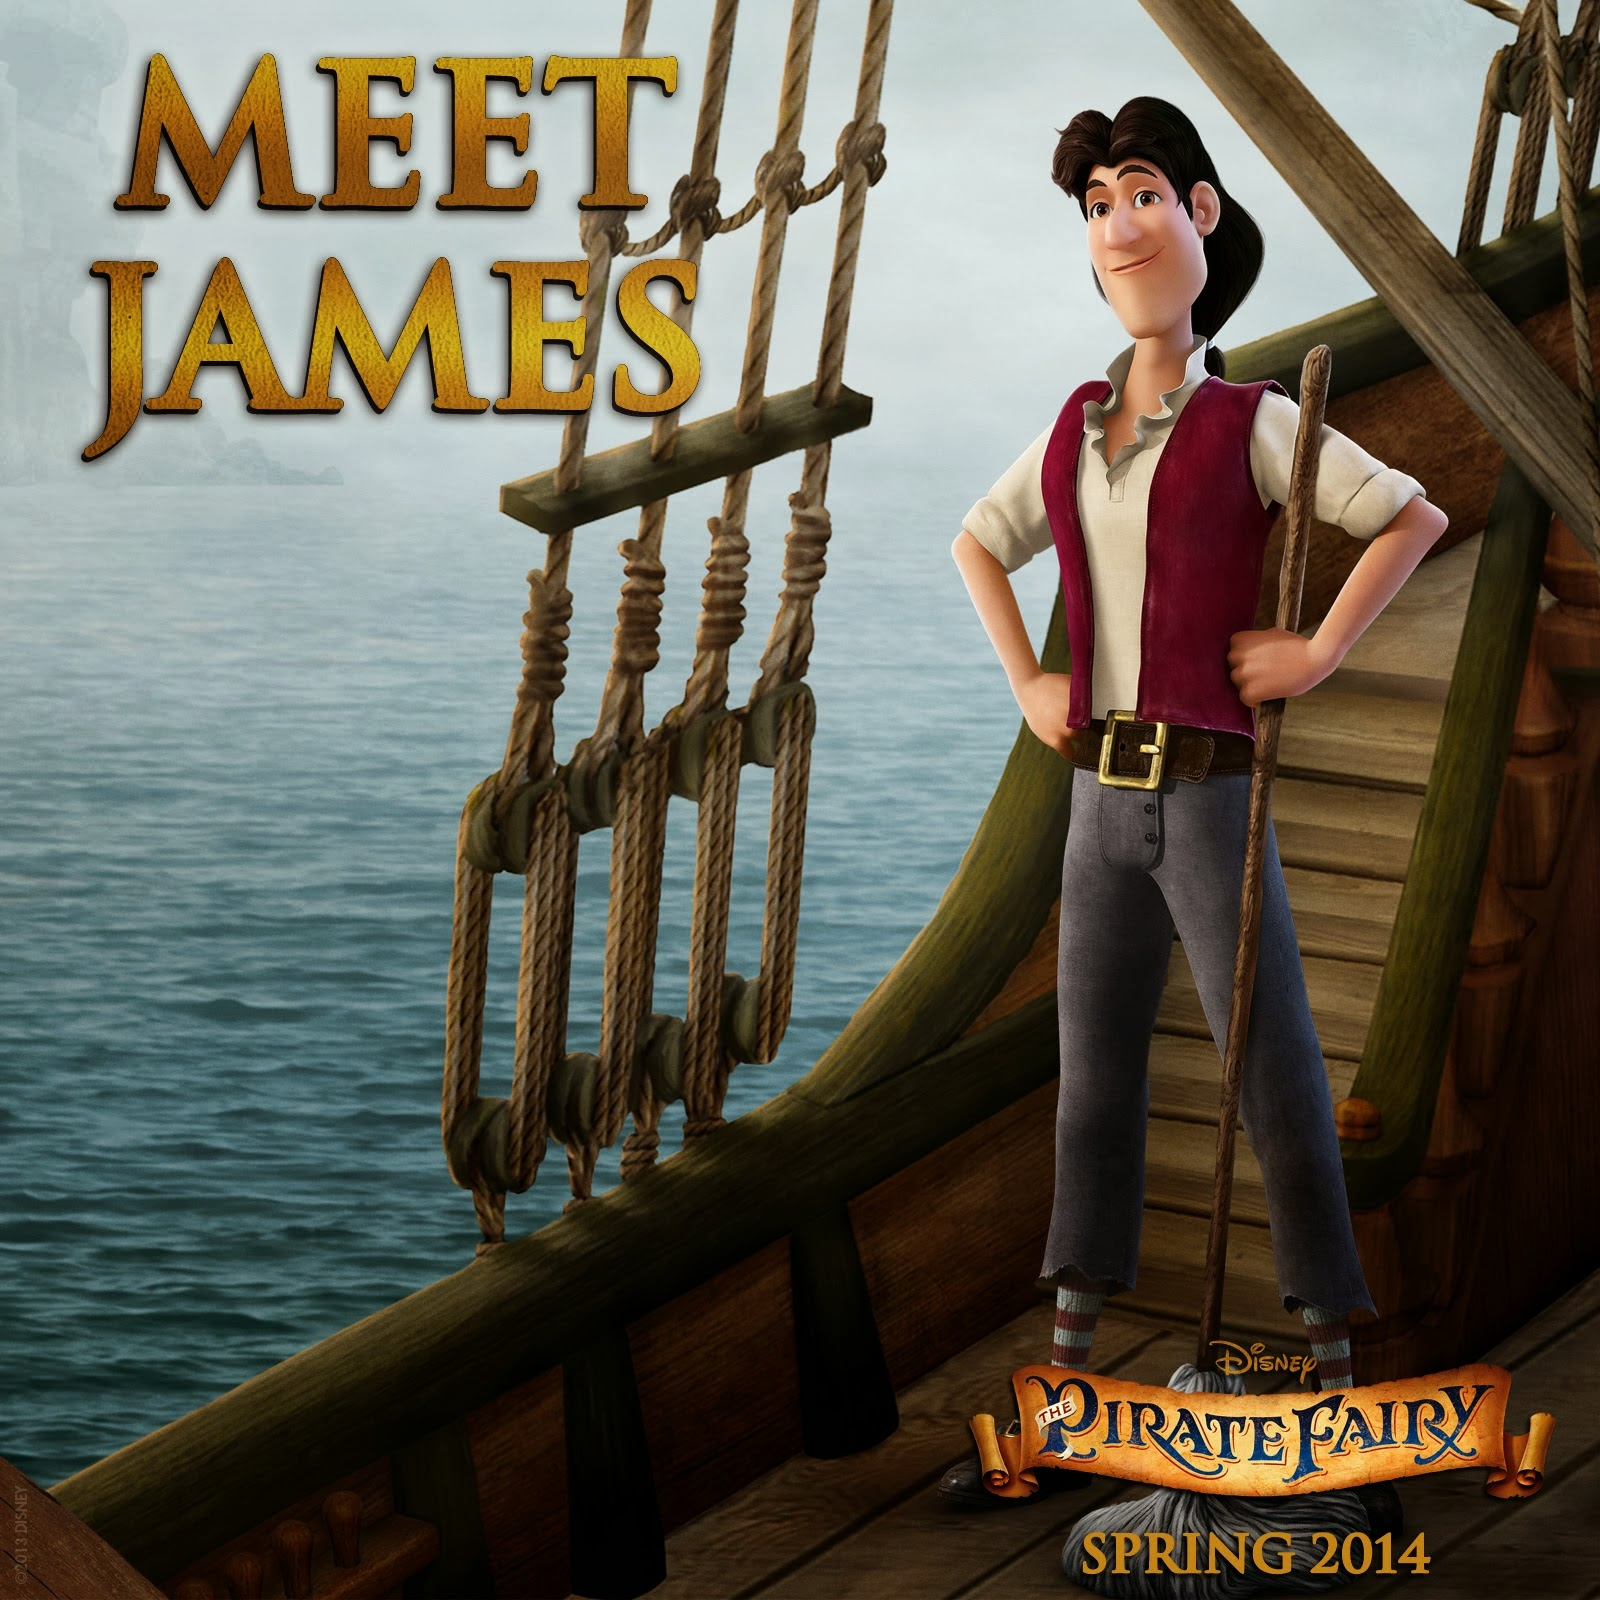 ��� ���� ������ ���� ������� The Pirate Fairy 2014 ����� PF MEET JAMES.jpg